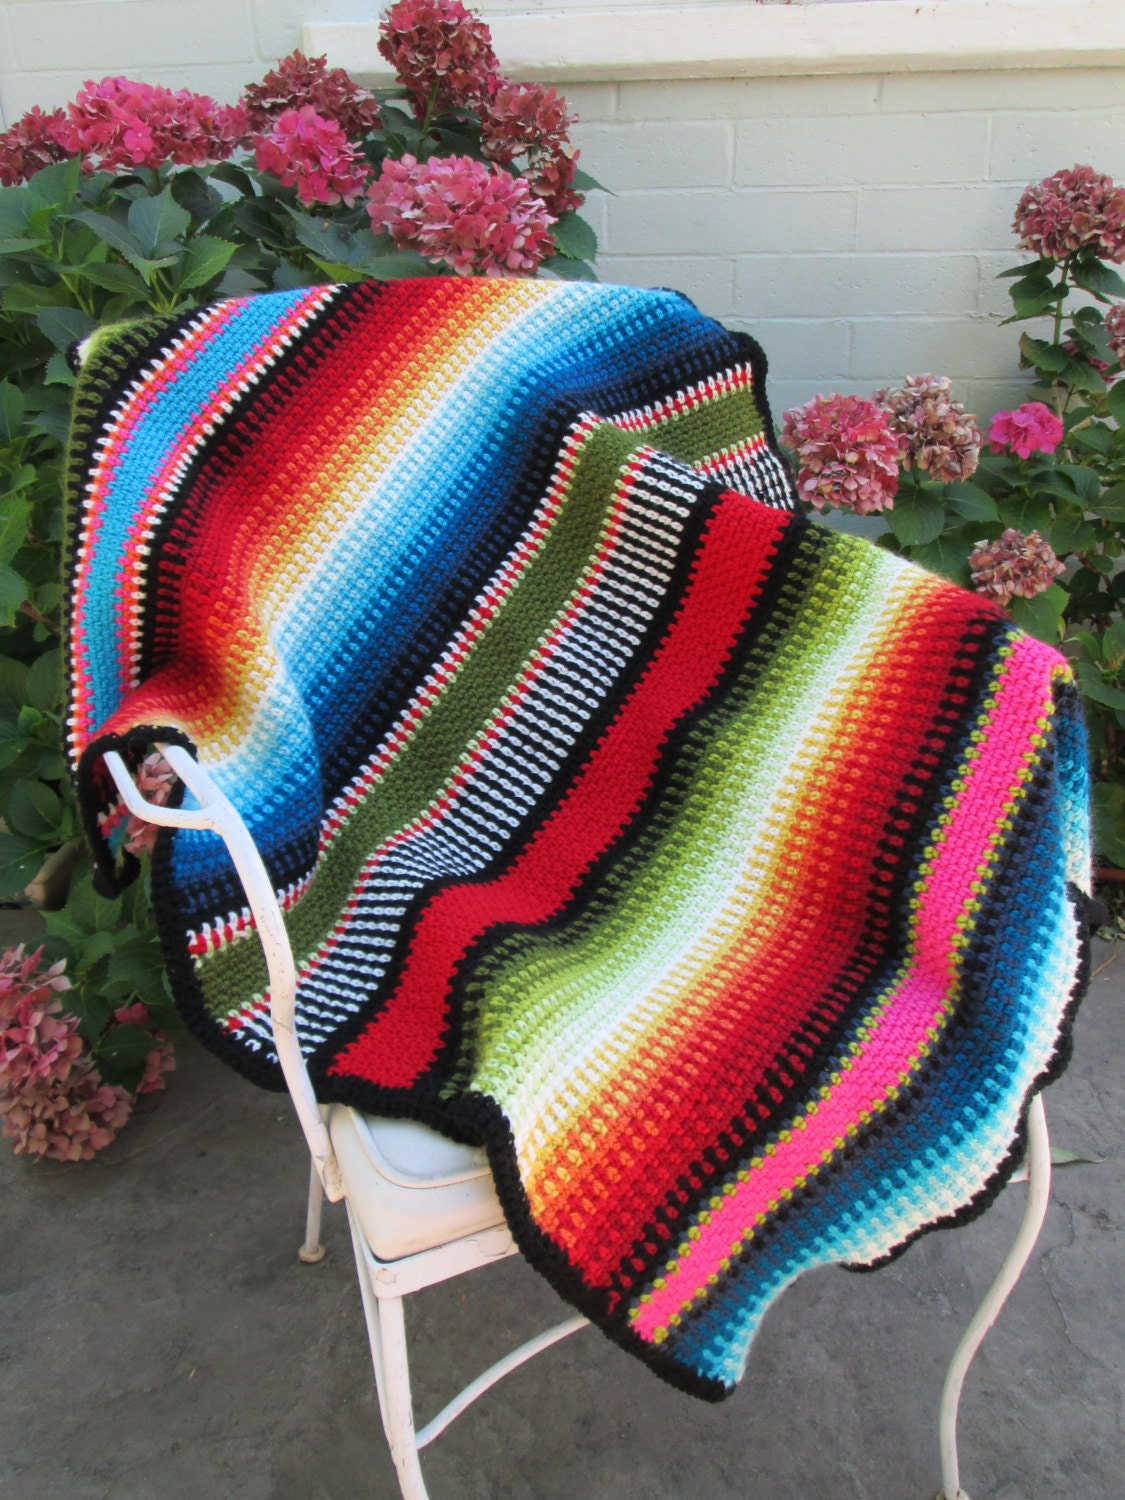 334 best images about Crochet-Native American and Western ... |Mexican Blanket Pattern